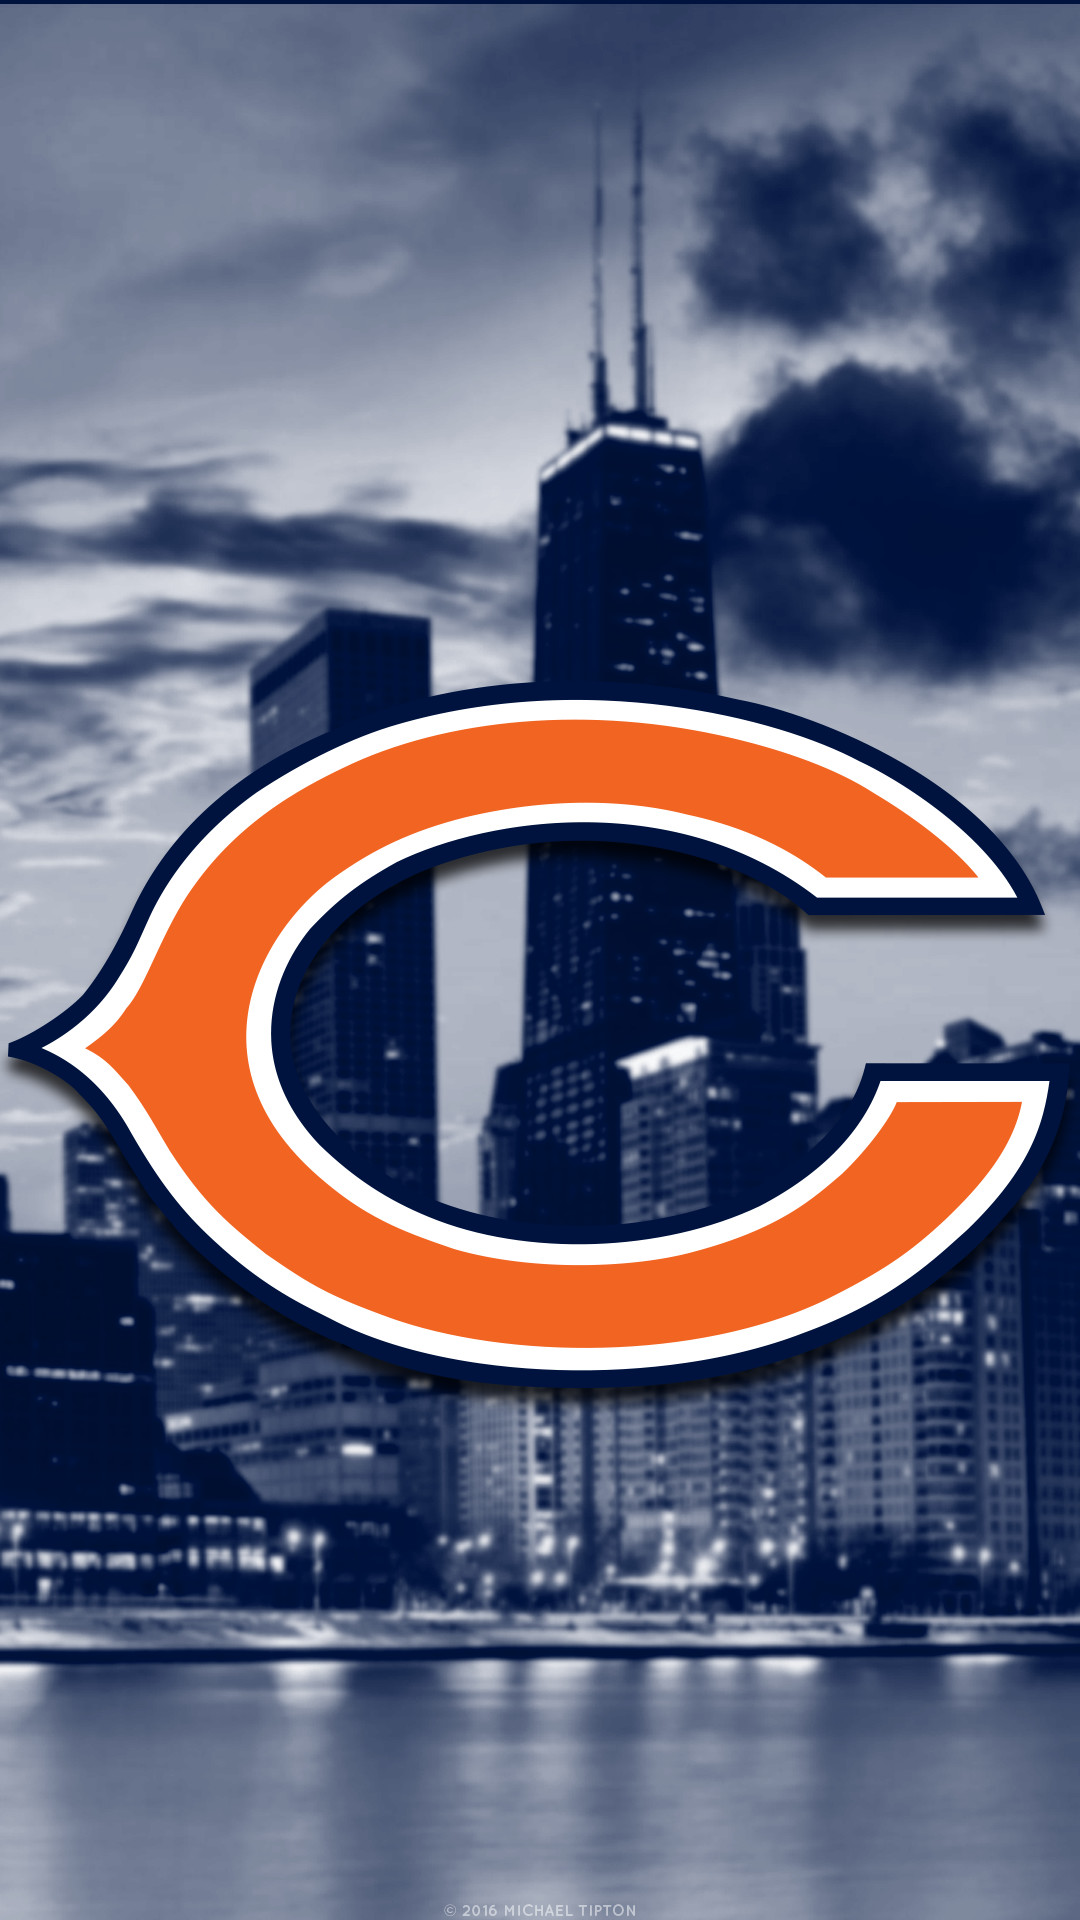 1080x1920 chicago bears iphone wallpaper